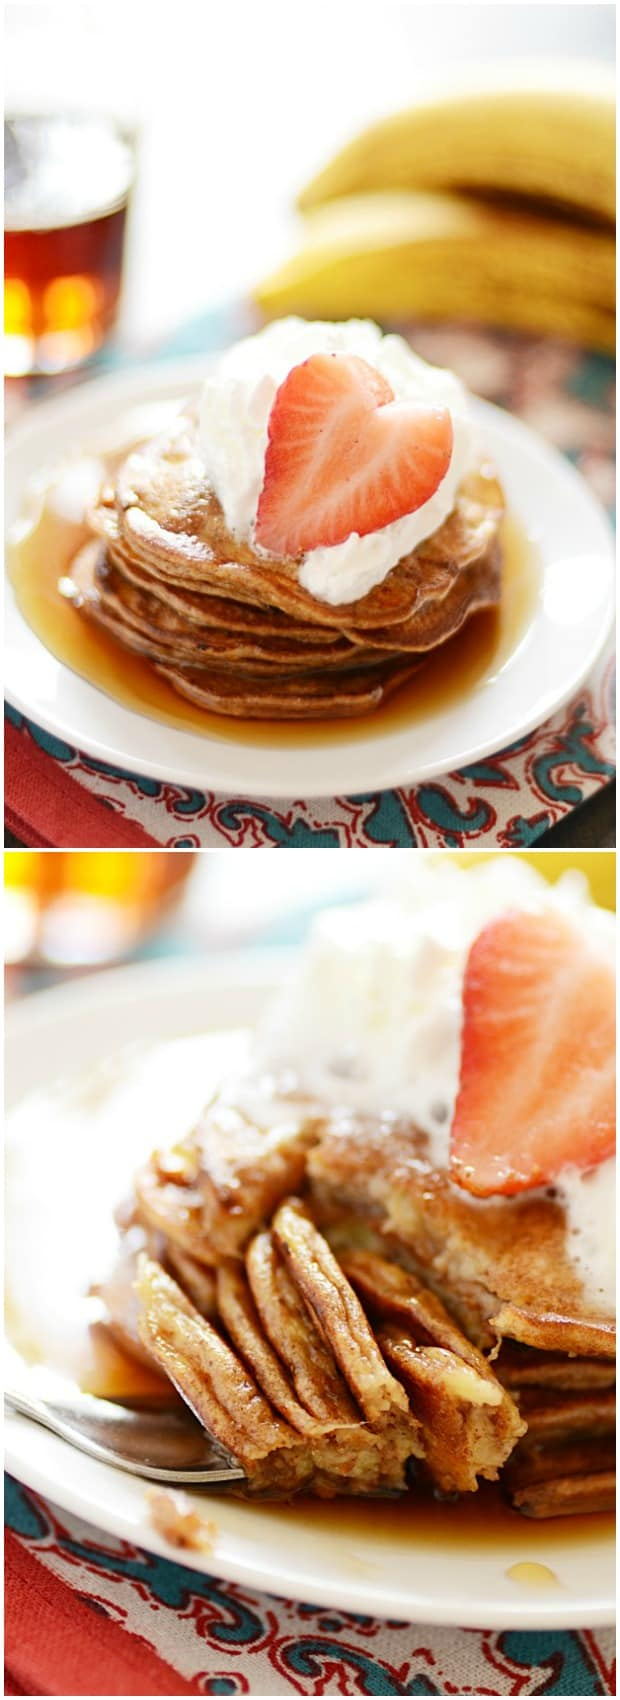 ... pancakes from that typical rubbery, egg-y feel most banana pancakes